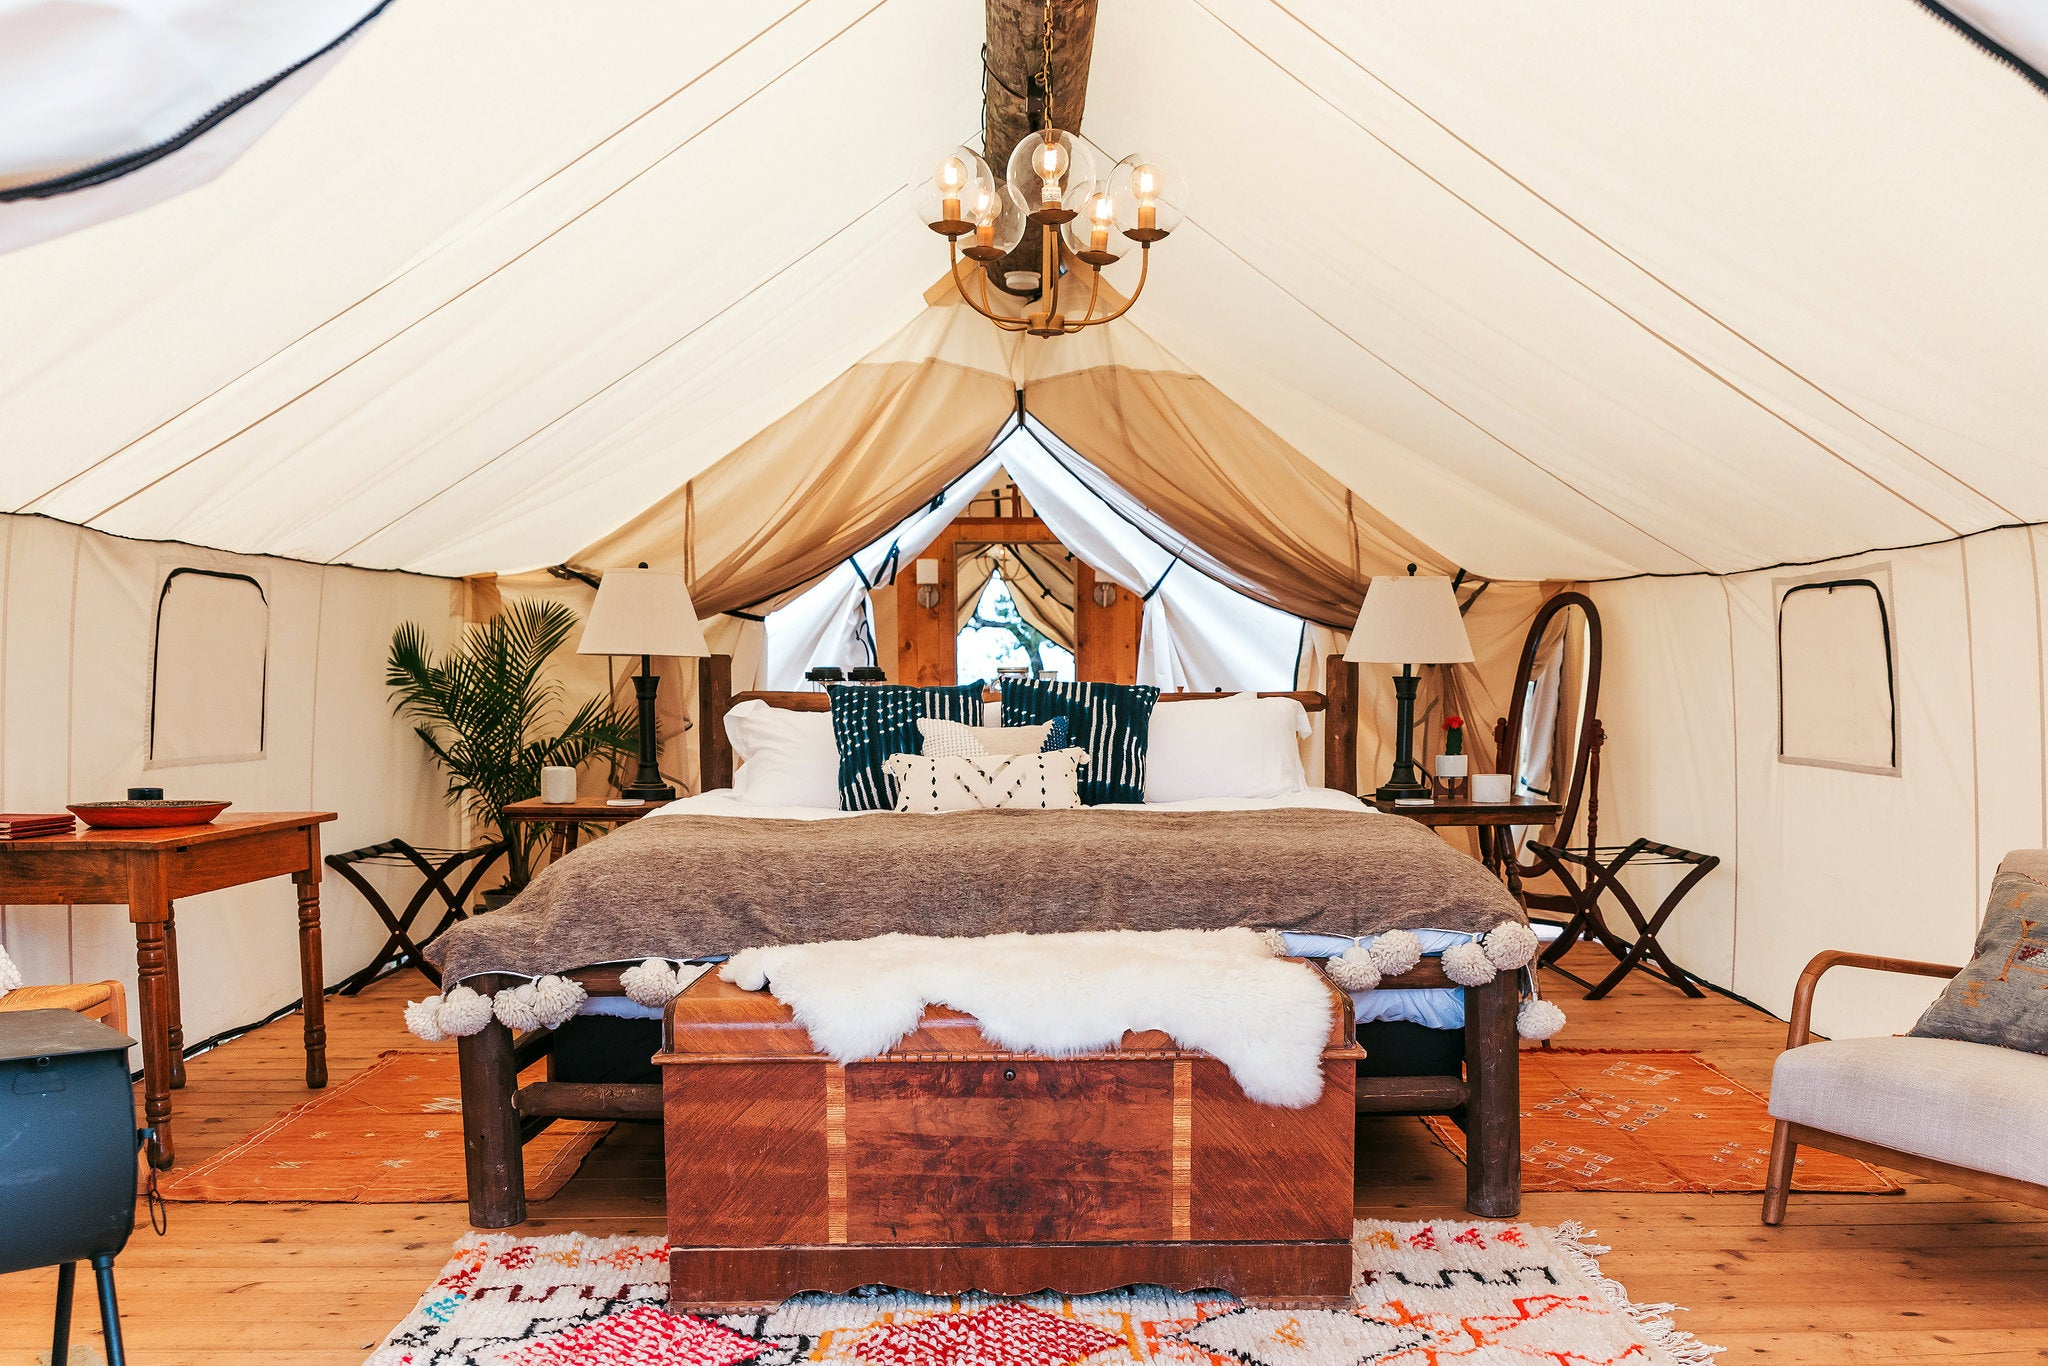 persian rugs, oriental rugs, london rugs, uk rug collections, glamping rugs, glamping 2021, tent decor, decor ideas